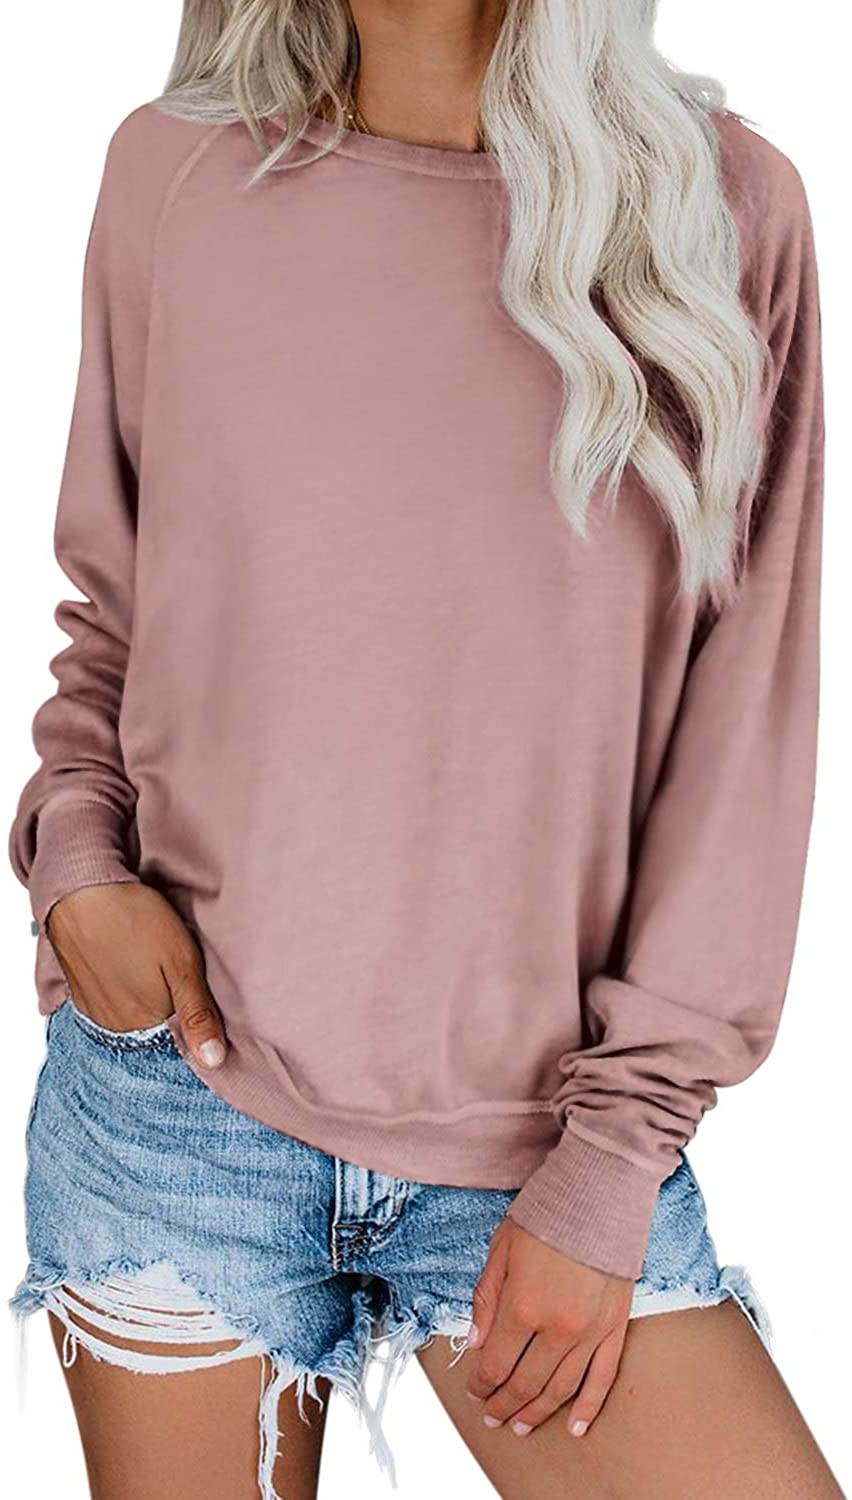 Dokotoo Womens Simple Crewneck Long Sleeve Casual Solid & Tie Dye Thin Pullover Sweatshirts Tops Shirts